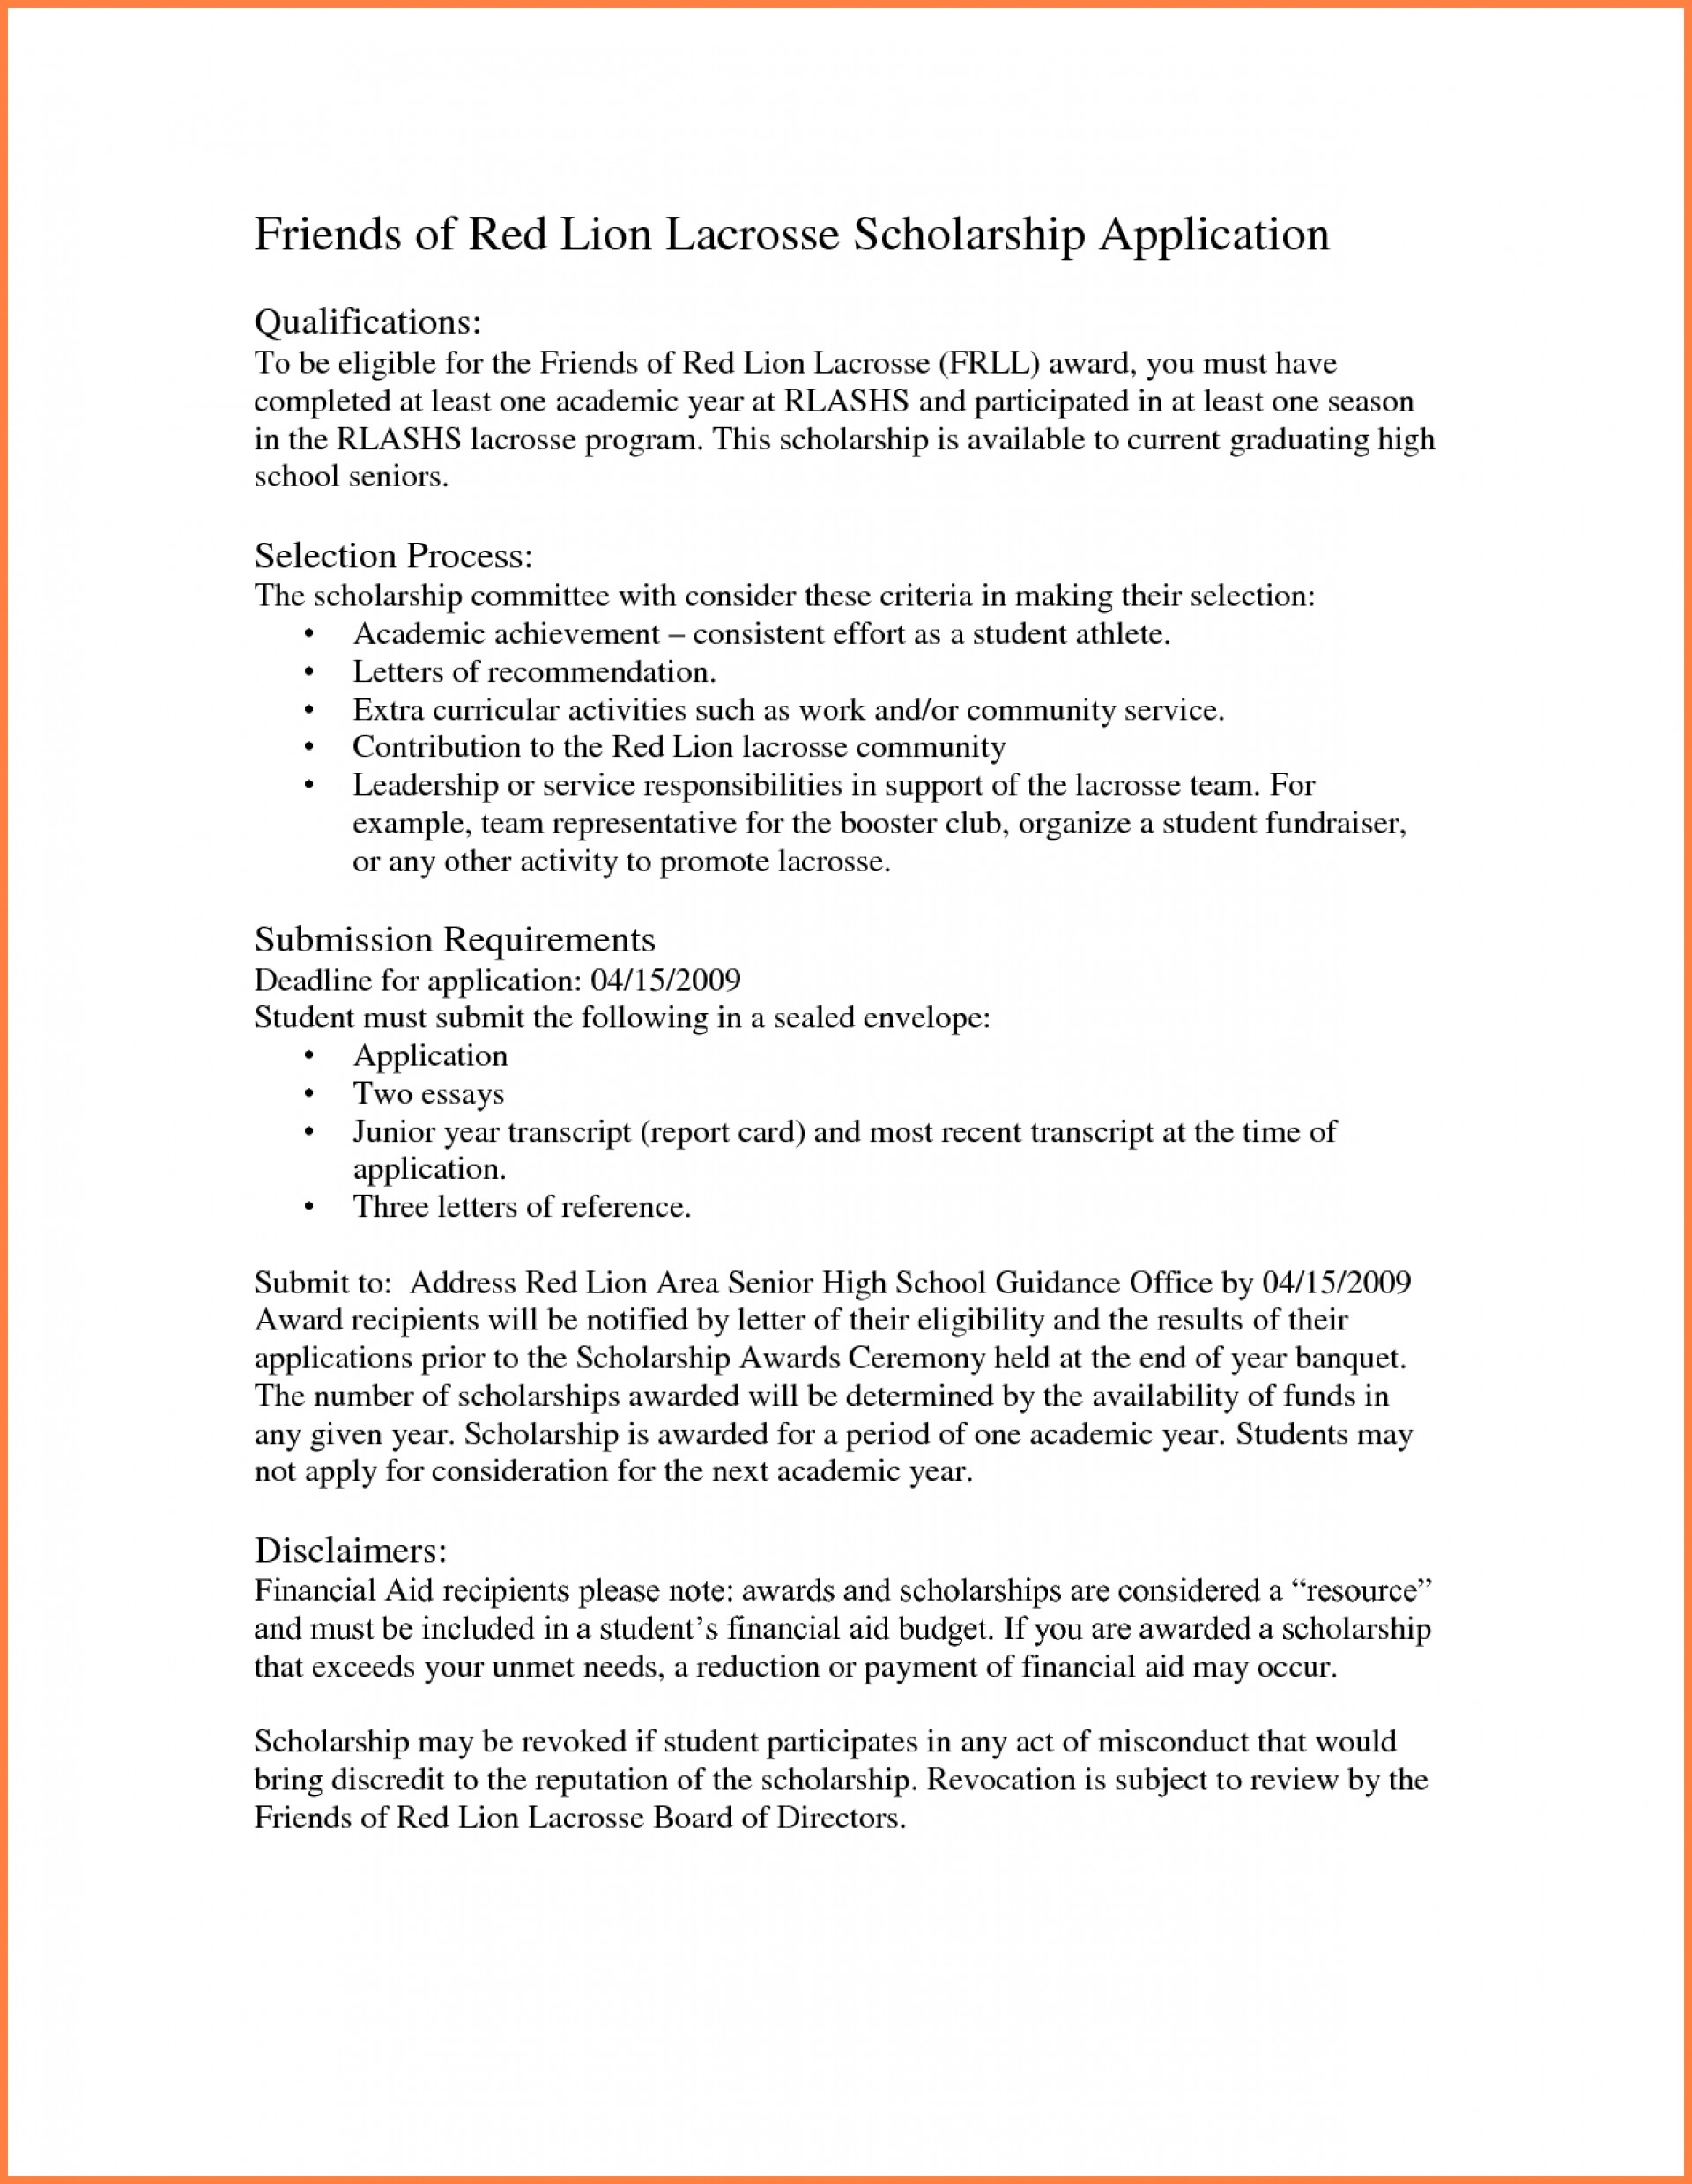 003 Essay Example Why I Deserve This Scholarship College How To Write Do Awesome You Think Sample A 1920